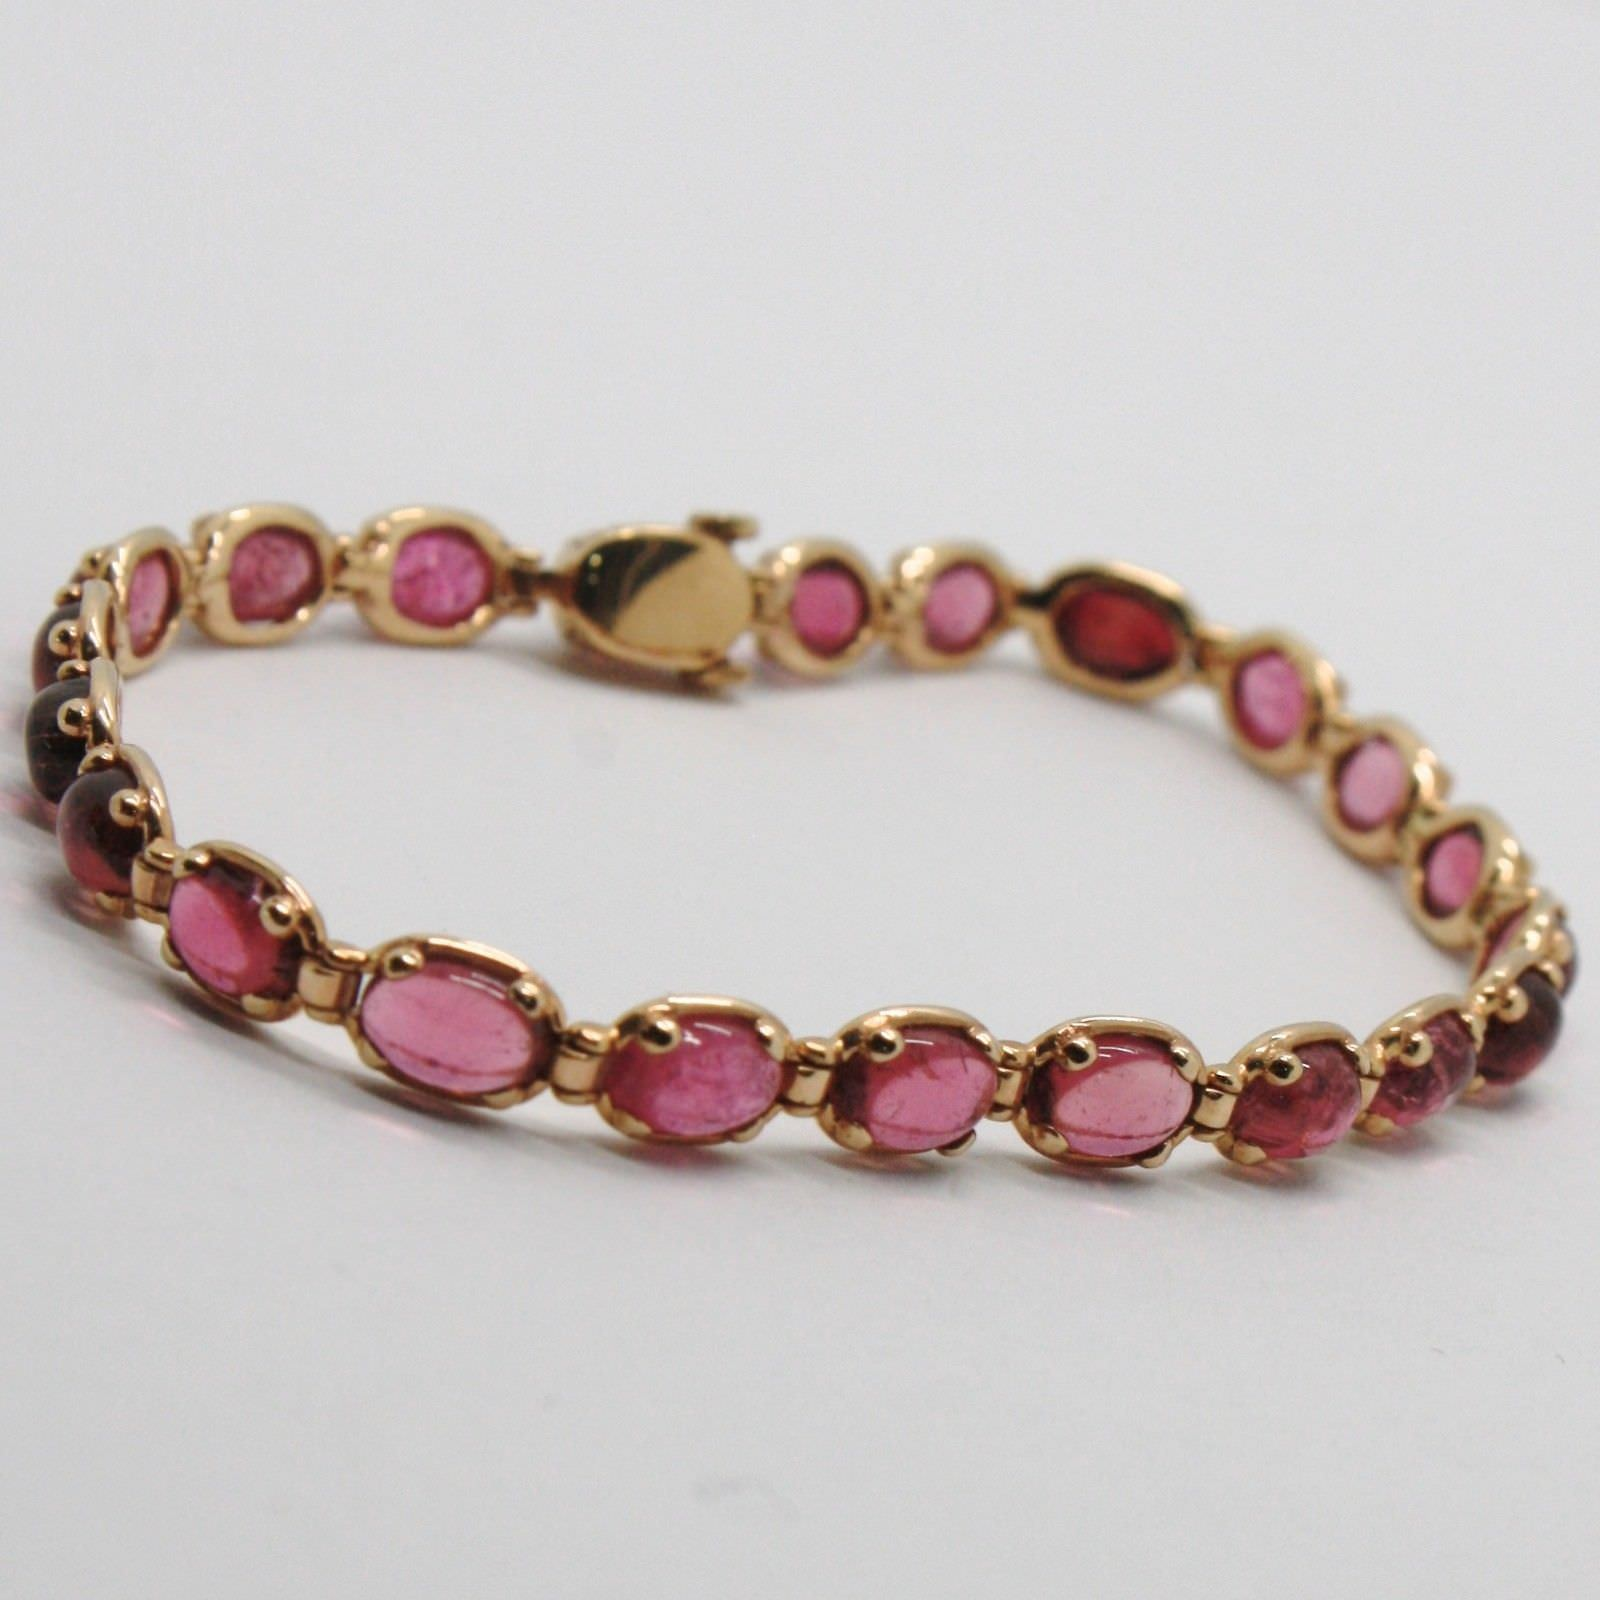 BRACELET GOLD PINK 9K TYPE TENNIS WITH TOURMALINE PINK NATURAL MADE IN ITALY